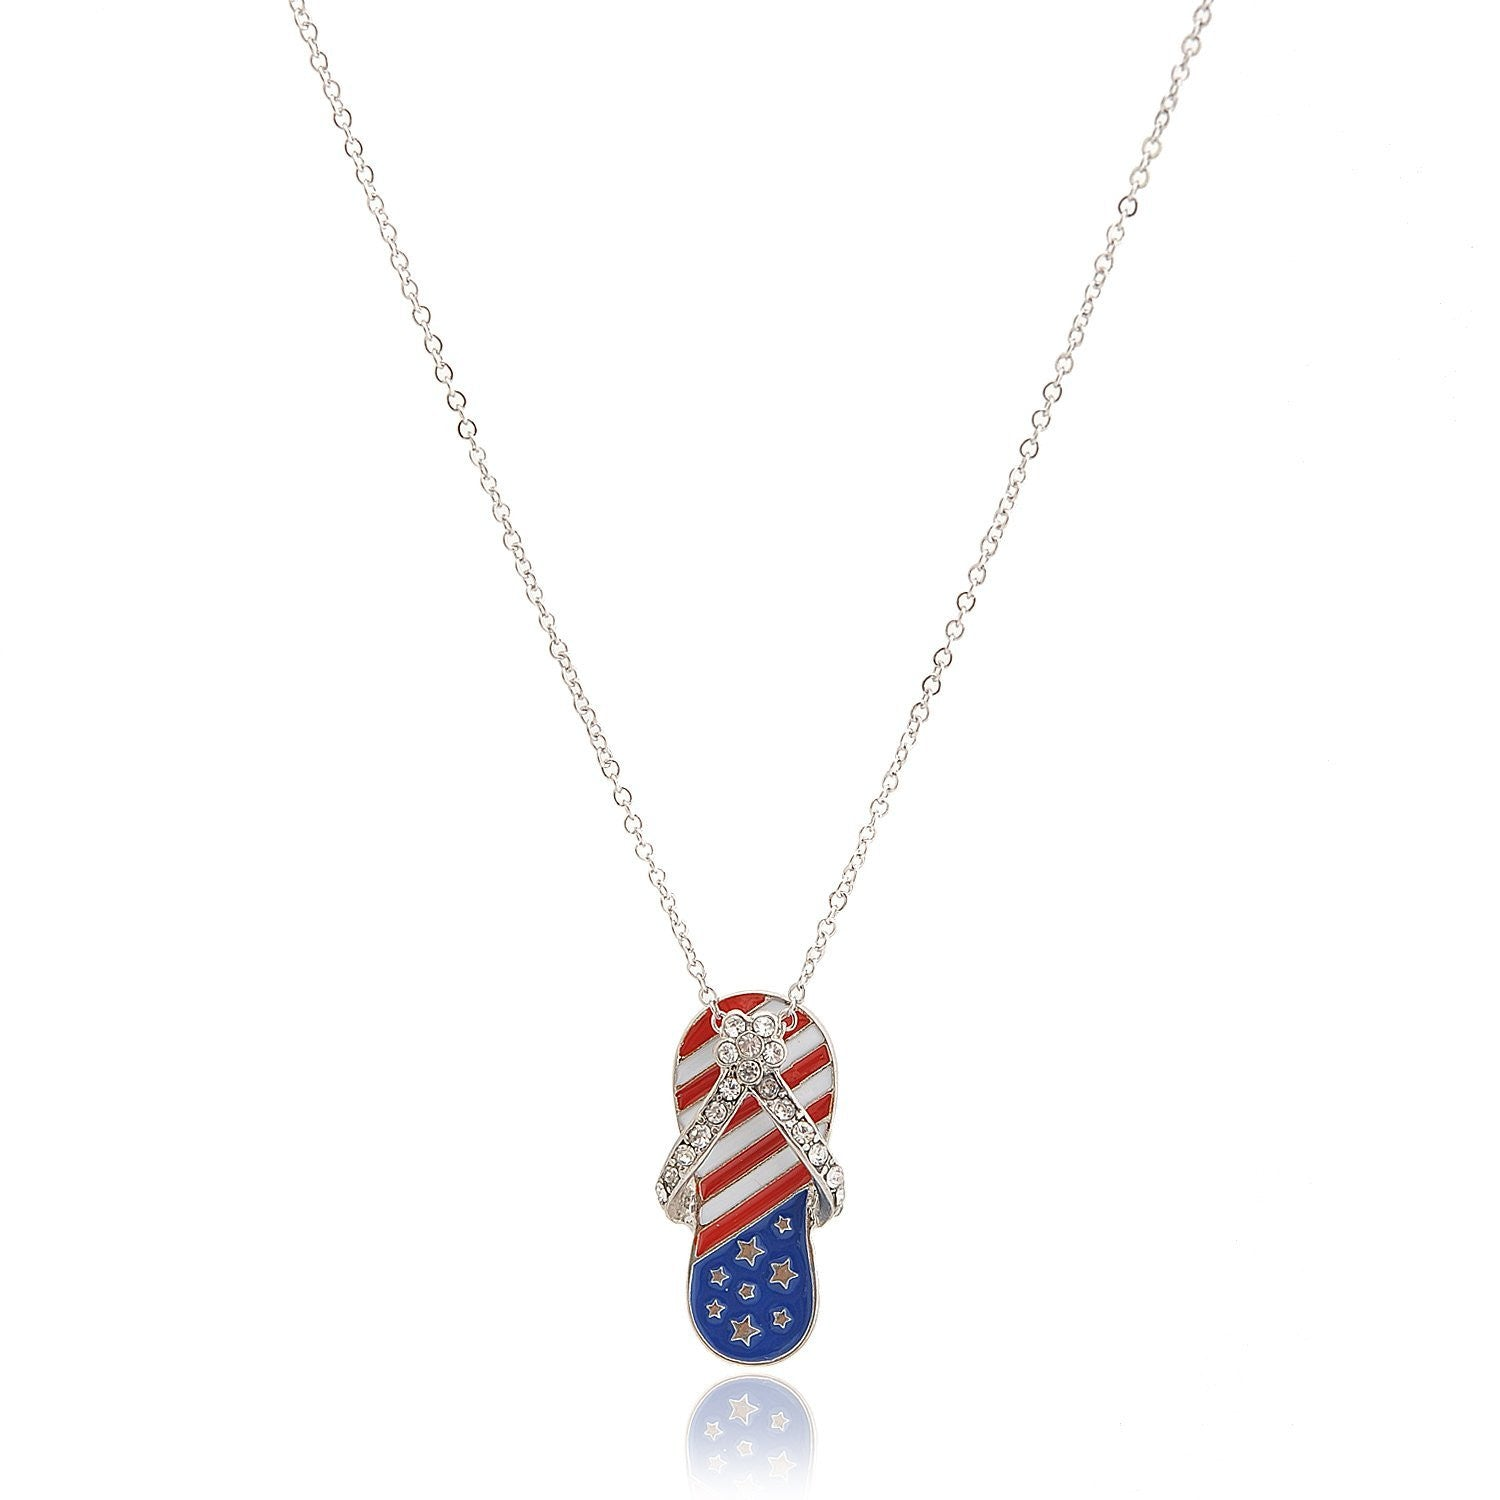 aliexpress store types toned necklace buy women flag day gift product clear rhodium com jewelry with men from stars american independence july enamel crystals